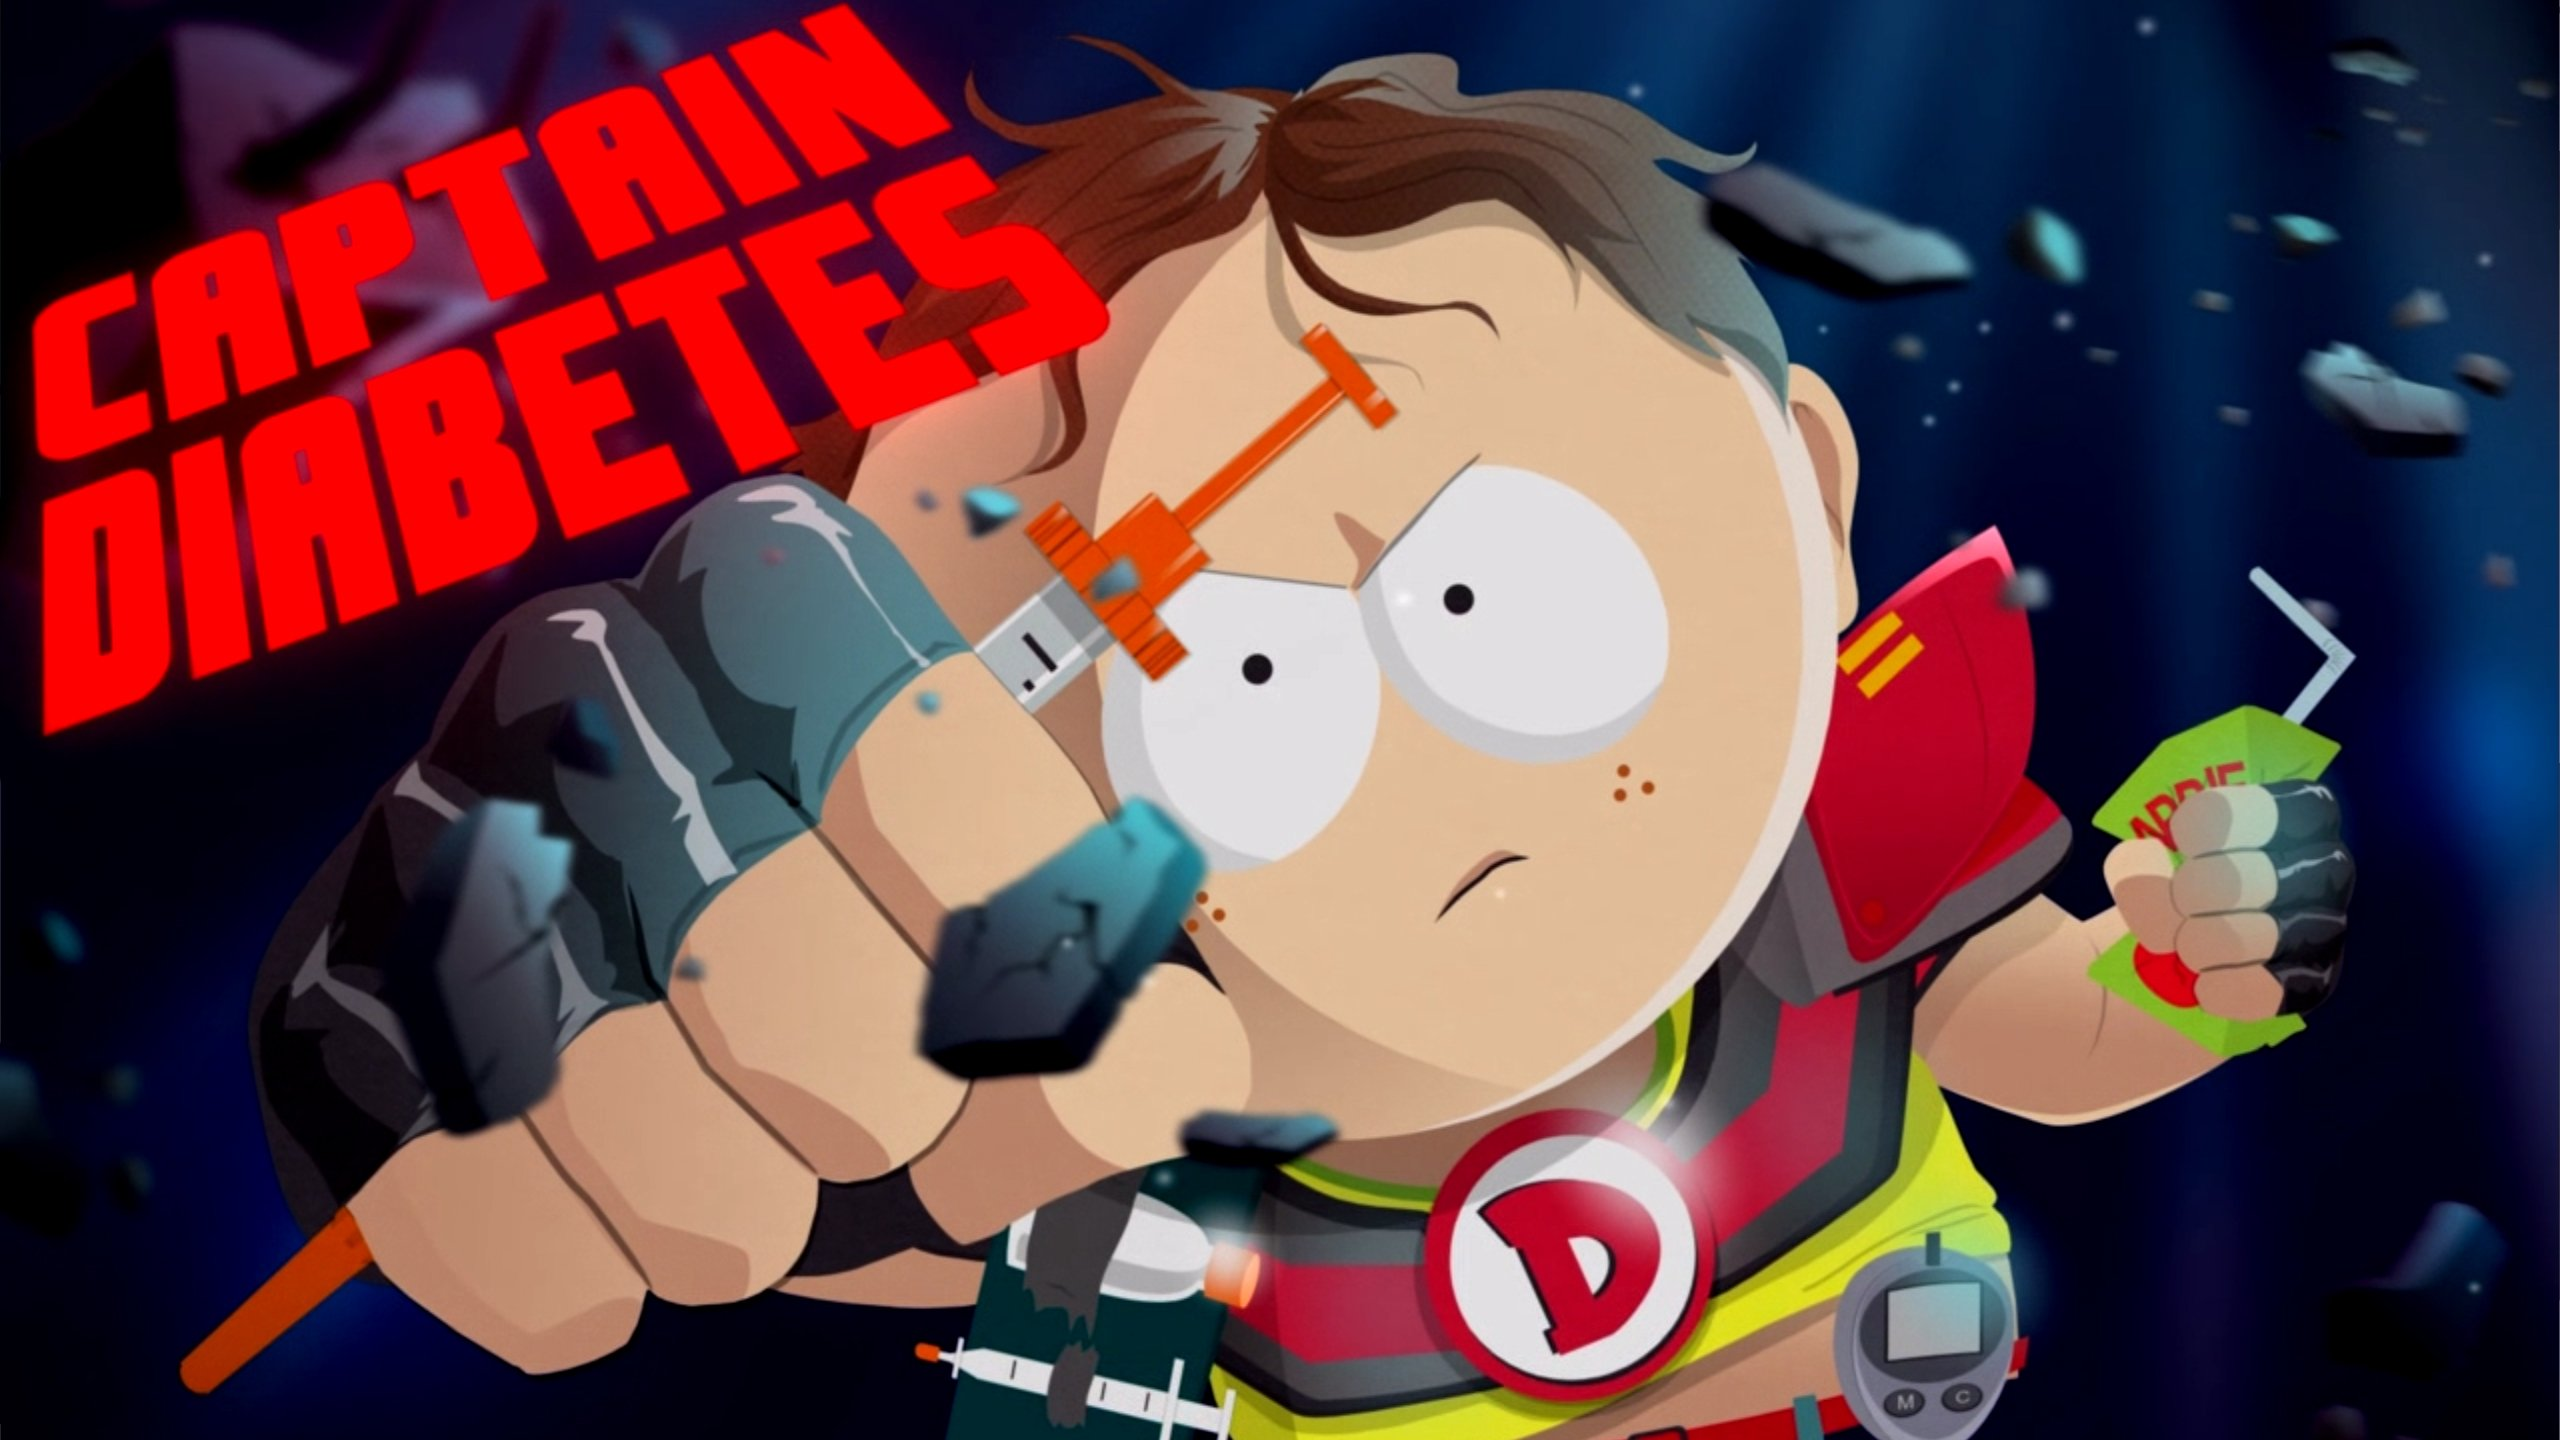 South Park The Fractured But Whole HD Wallpaper 13   2560 X 1440 2560x1440